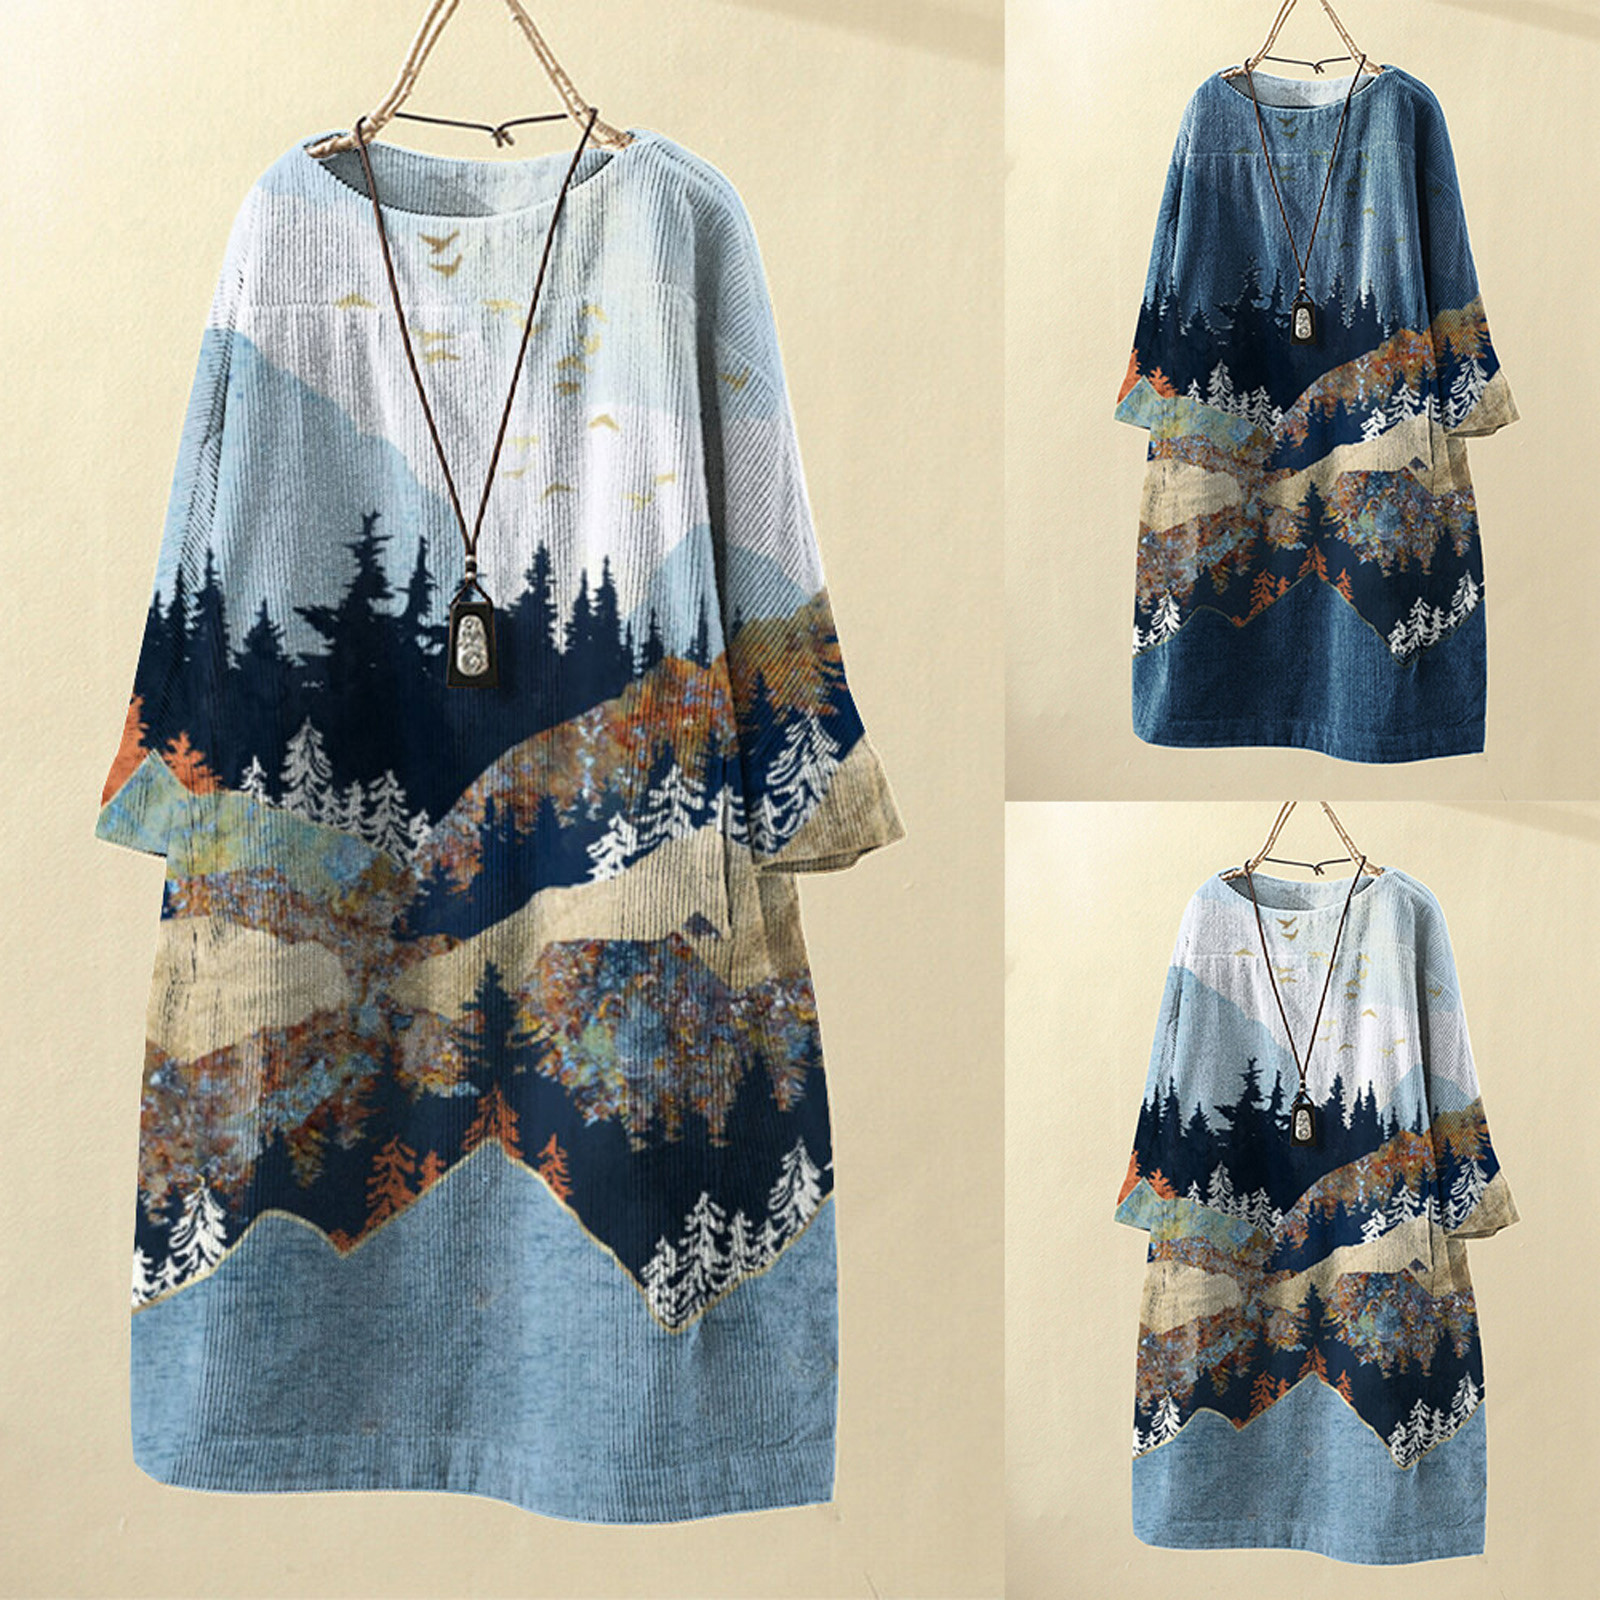 платье 2021 Women Vintage Pockets Dresses Corduroy Harajuku Clothes Landscape Print Long Sleeve Clothing Loose Dresses